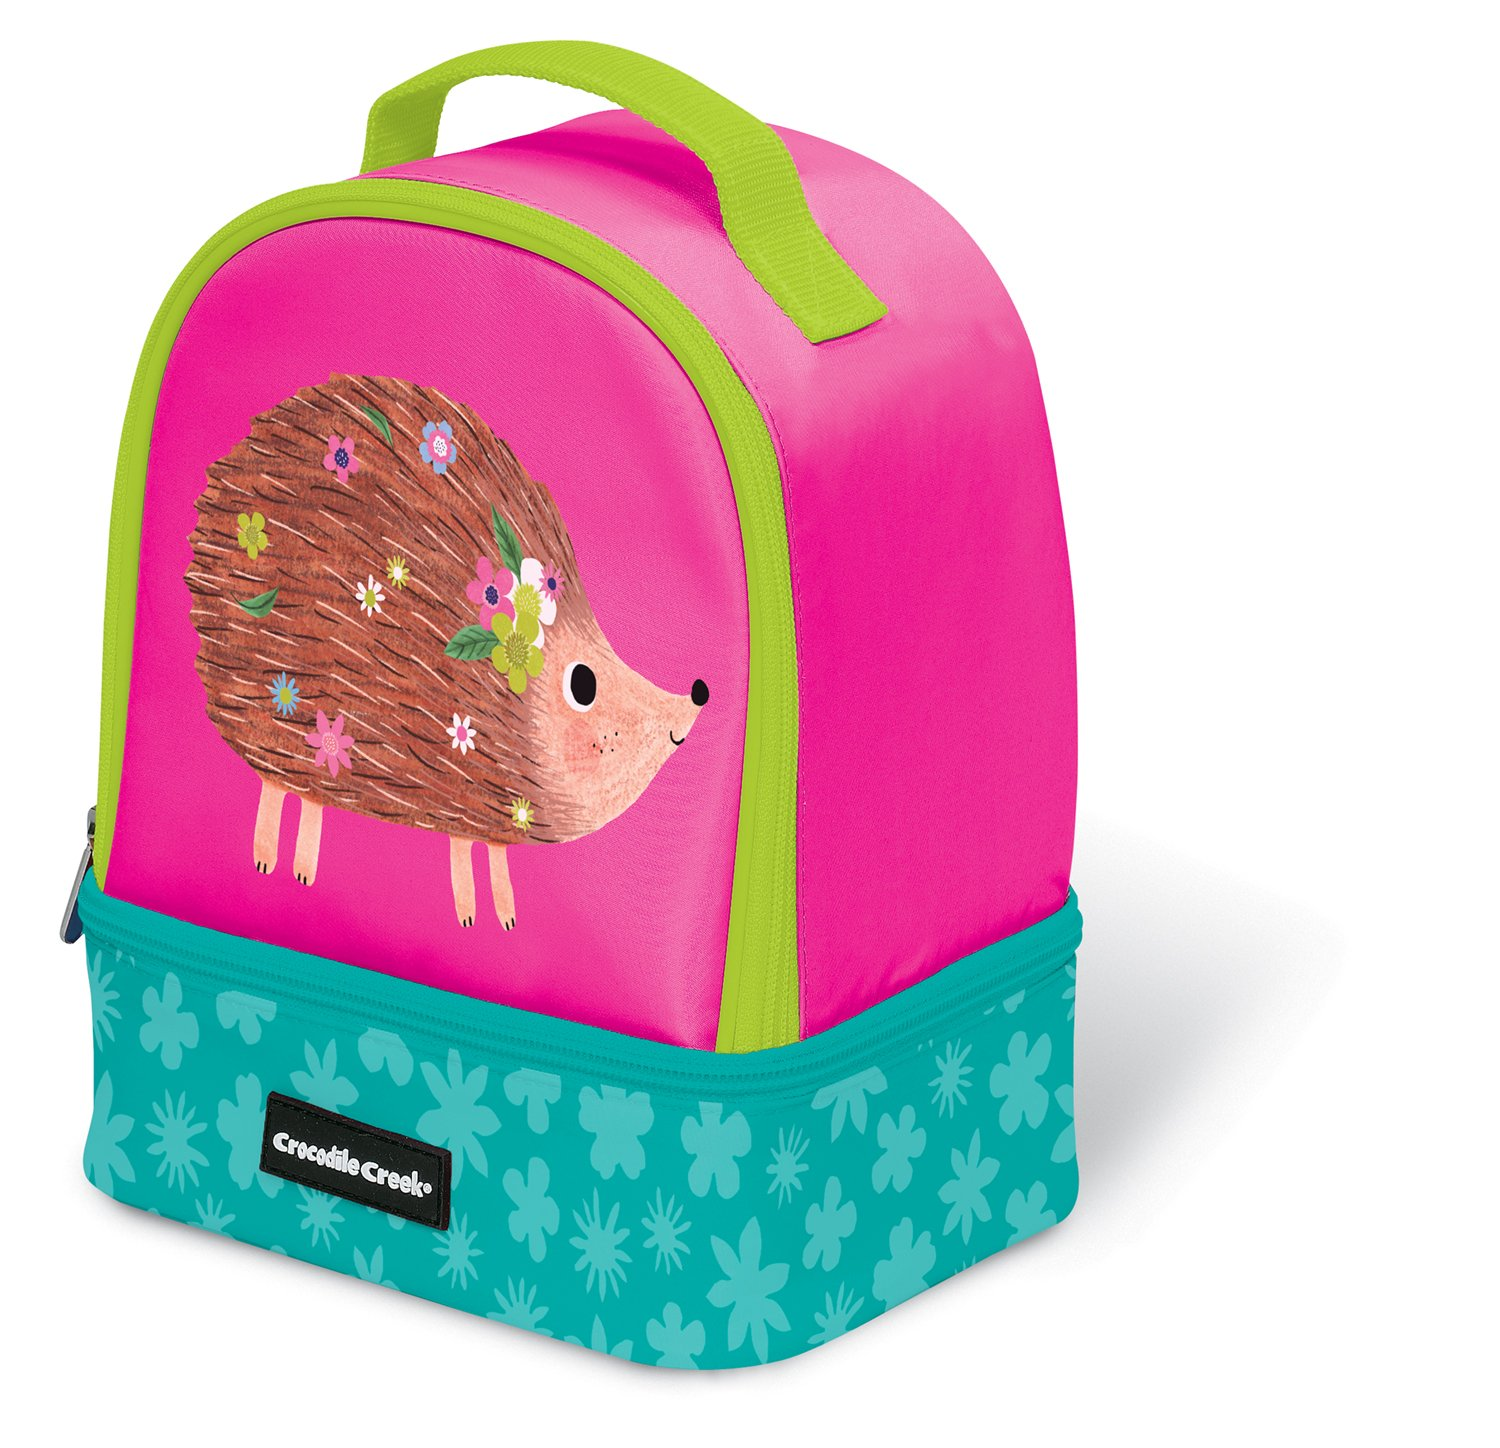 3ec0aa64ed Get Quotations · Crocodile Creek Eco Pink Hedgehog Two Compartment Kids   Lunchbox Insulated Lunch Box with Handle